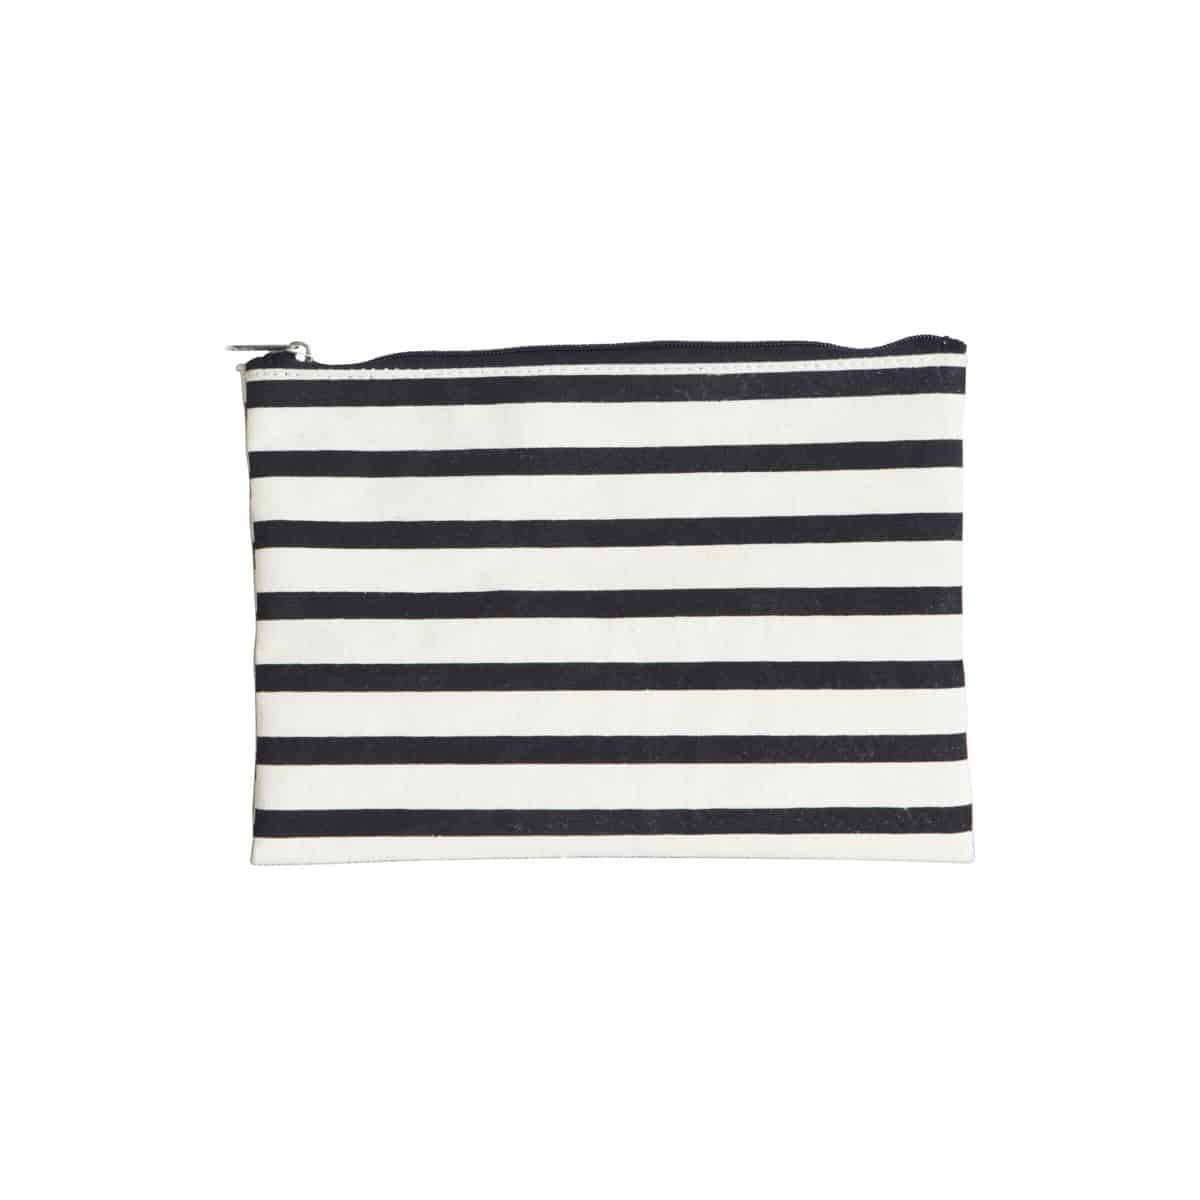 Kulturtasche, Stripes Big | 32x8cm H. 21cm